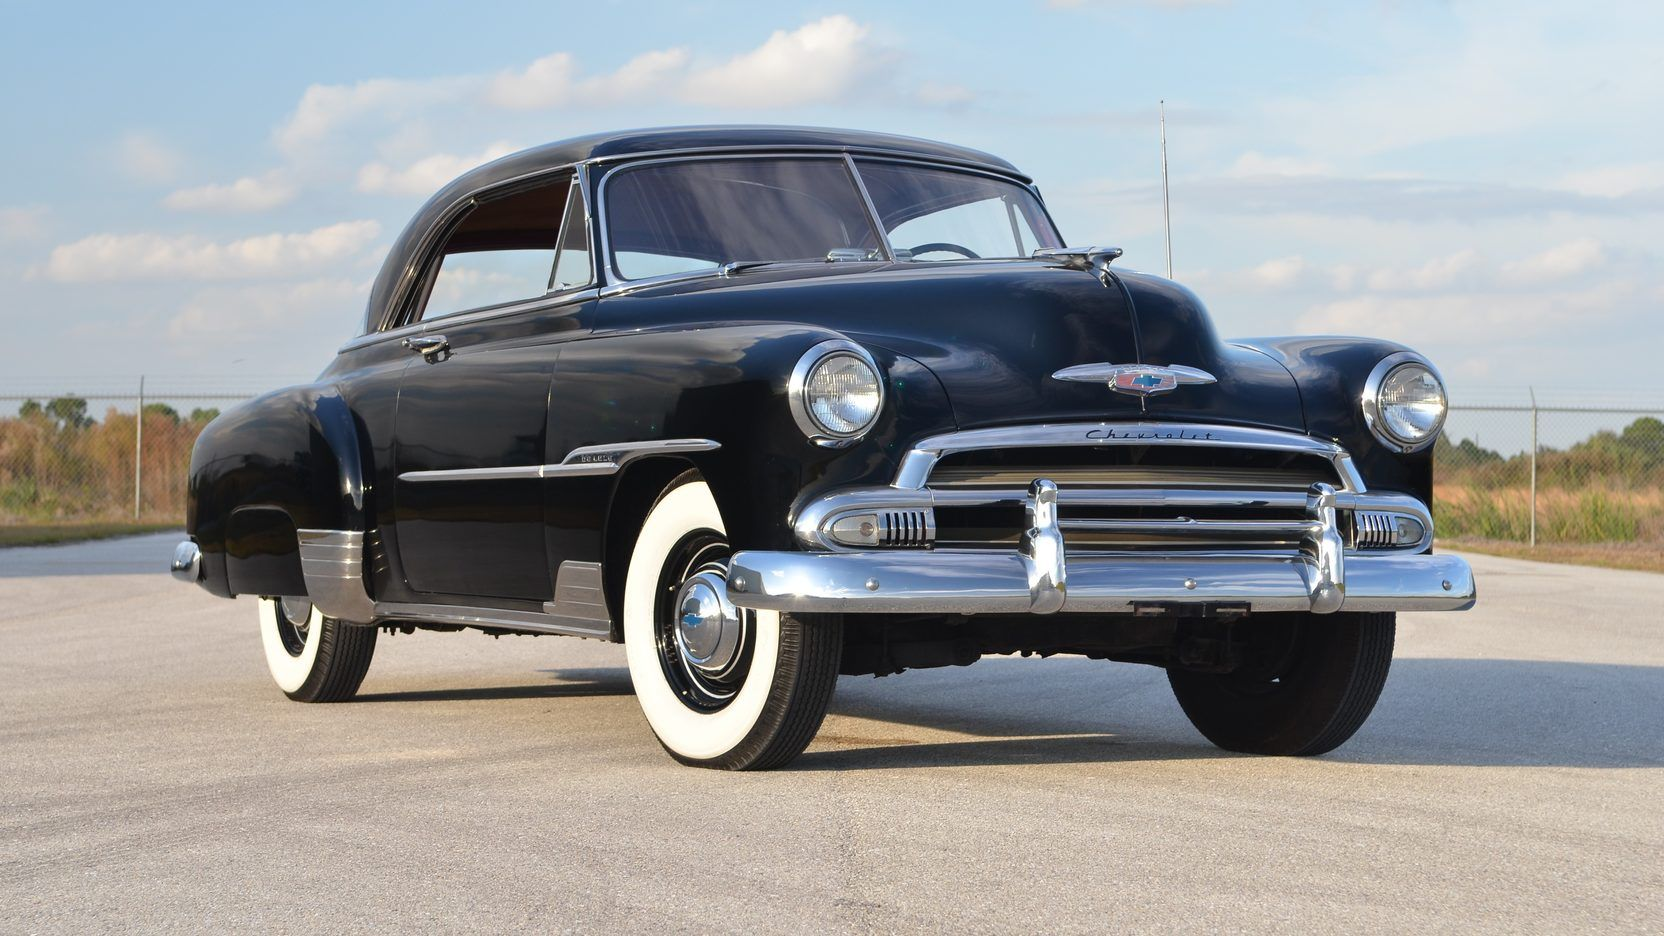 Coupe 1951 chevy coupe parts : 1951 CHEVROLET BEL AIR HARDTOP 50 51 52 CHEVY 2 DOOR IA 1 PARTS ...